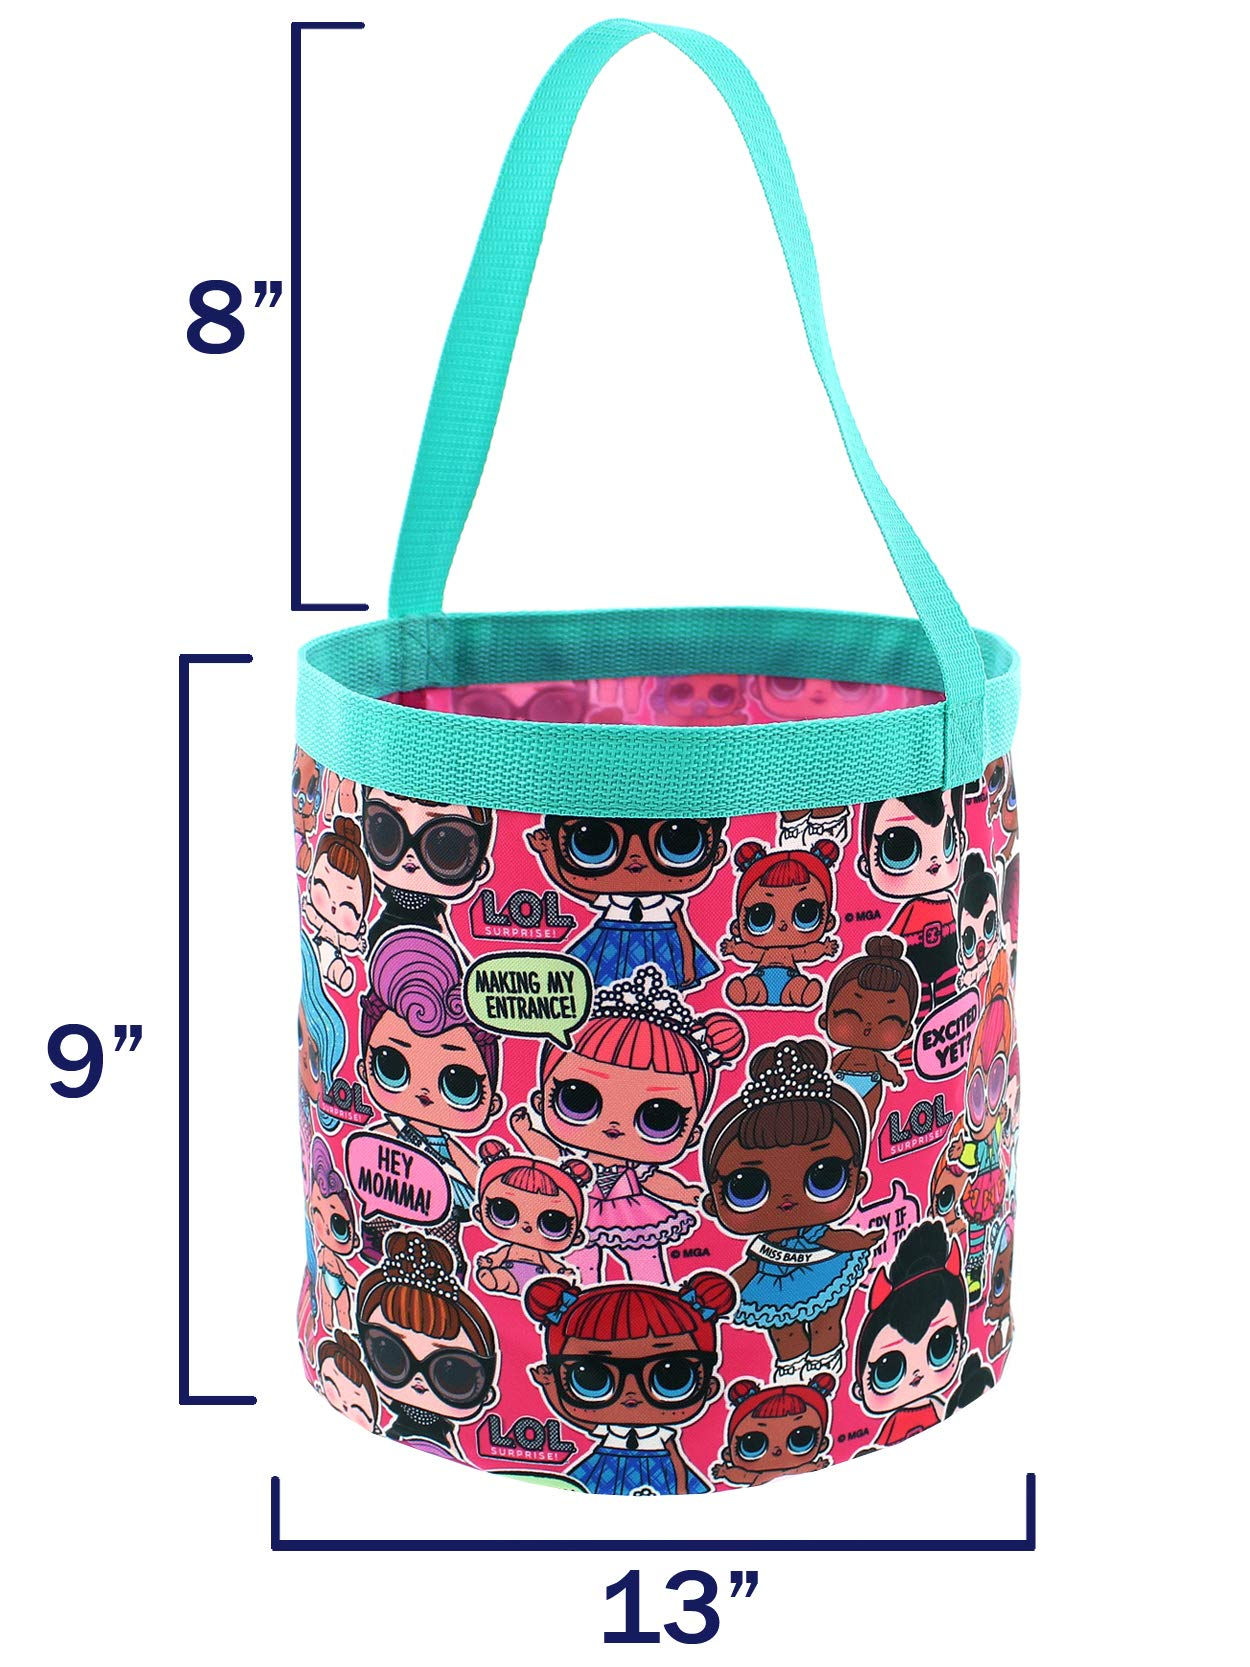 L.O.L. Surprise! Girls Collapsible Nylon Beach Bucket Toy Storage Gift Tote Bag (One Size, Pink) by L.O.L. Surprise! (Image #3)